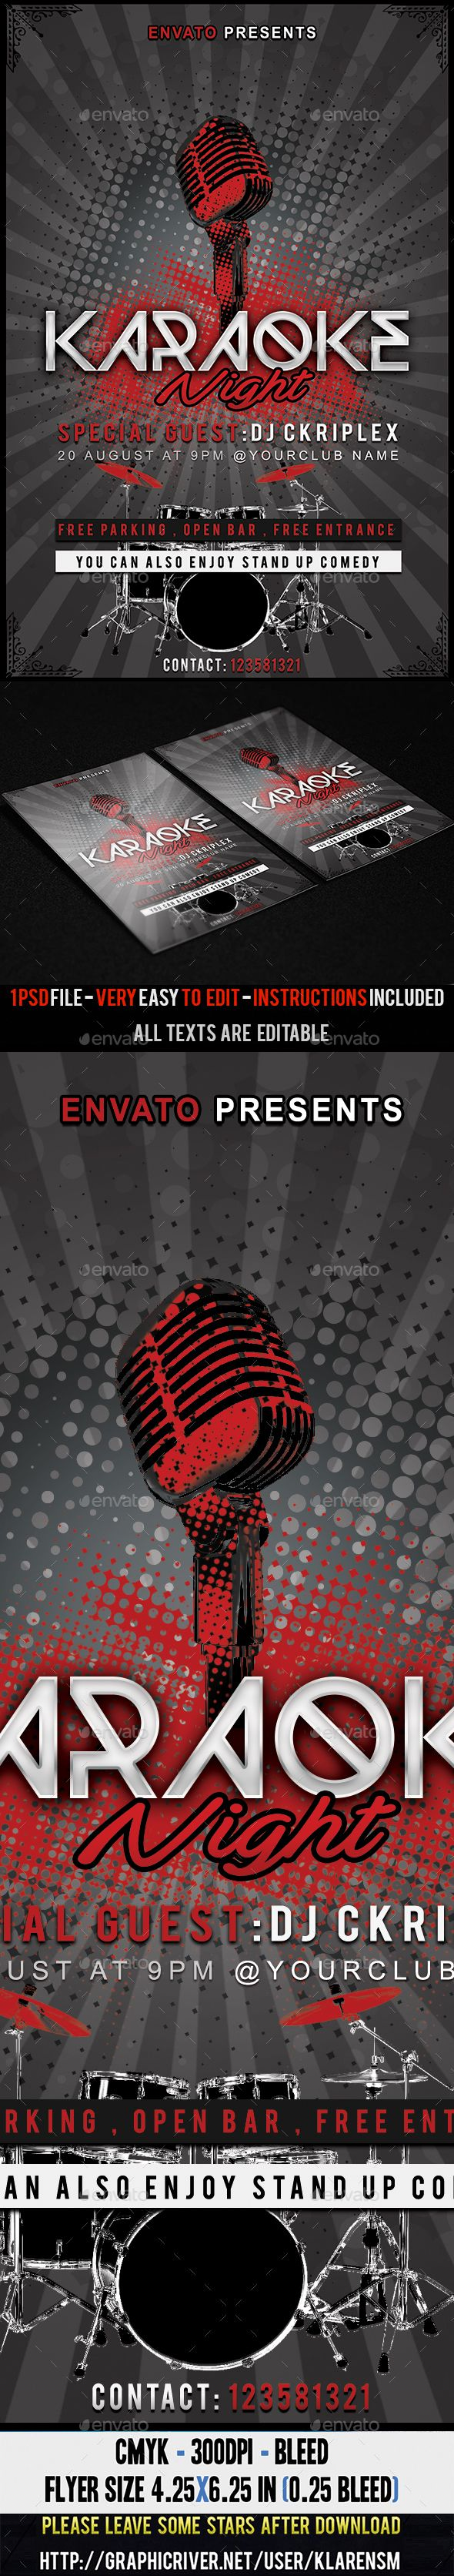 Karaoke Night Flyer Template  Flyer Template Karaoke And Flyer Size